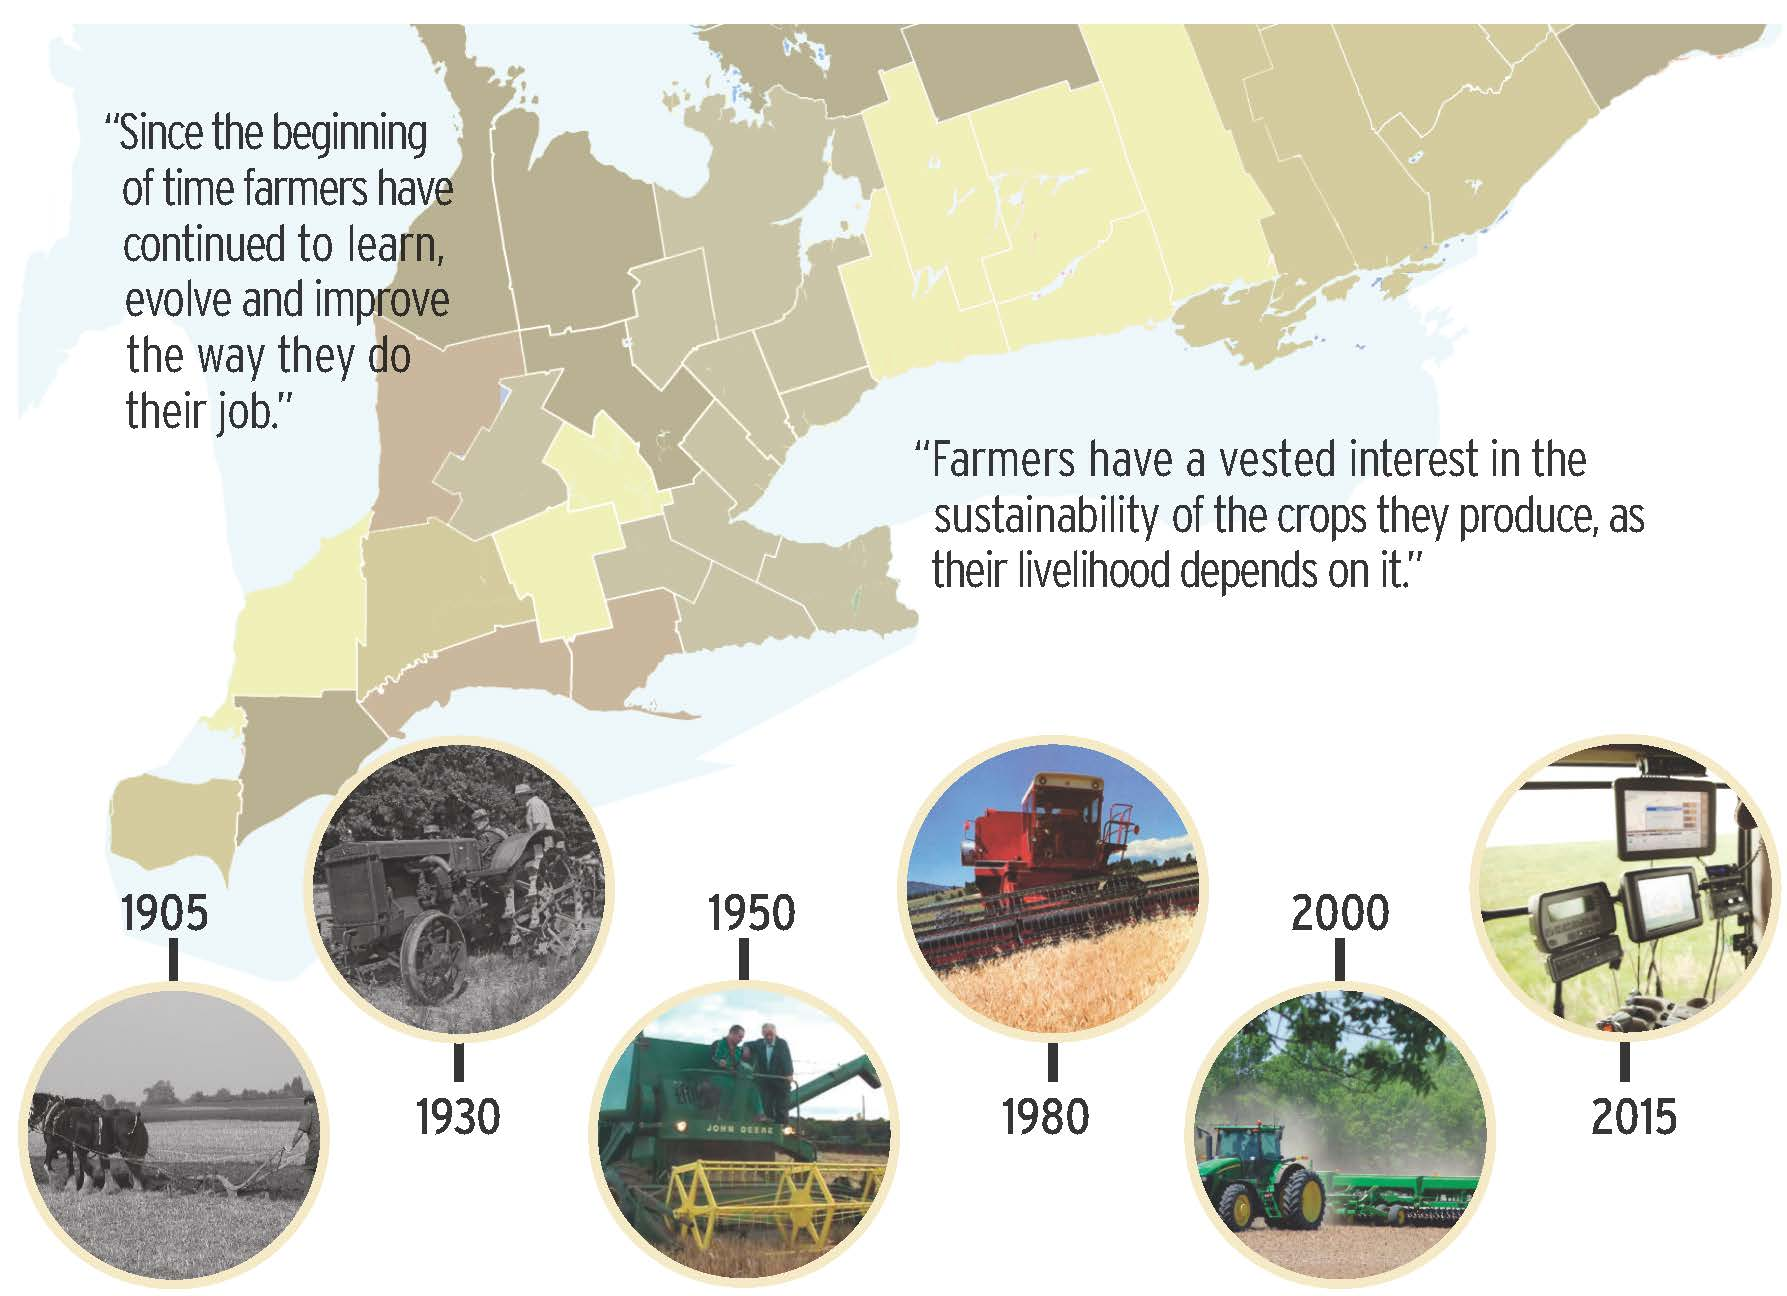 """""""Since the beginning of time farmers have continued to learn, evolve and improve the way they do their job. Farmers have a vested interest in the sustainability of the crops they produce, as their livelihood depends on it. Images depict the evolution of farm equipment from 1905 to 2015."""